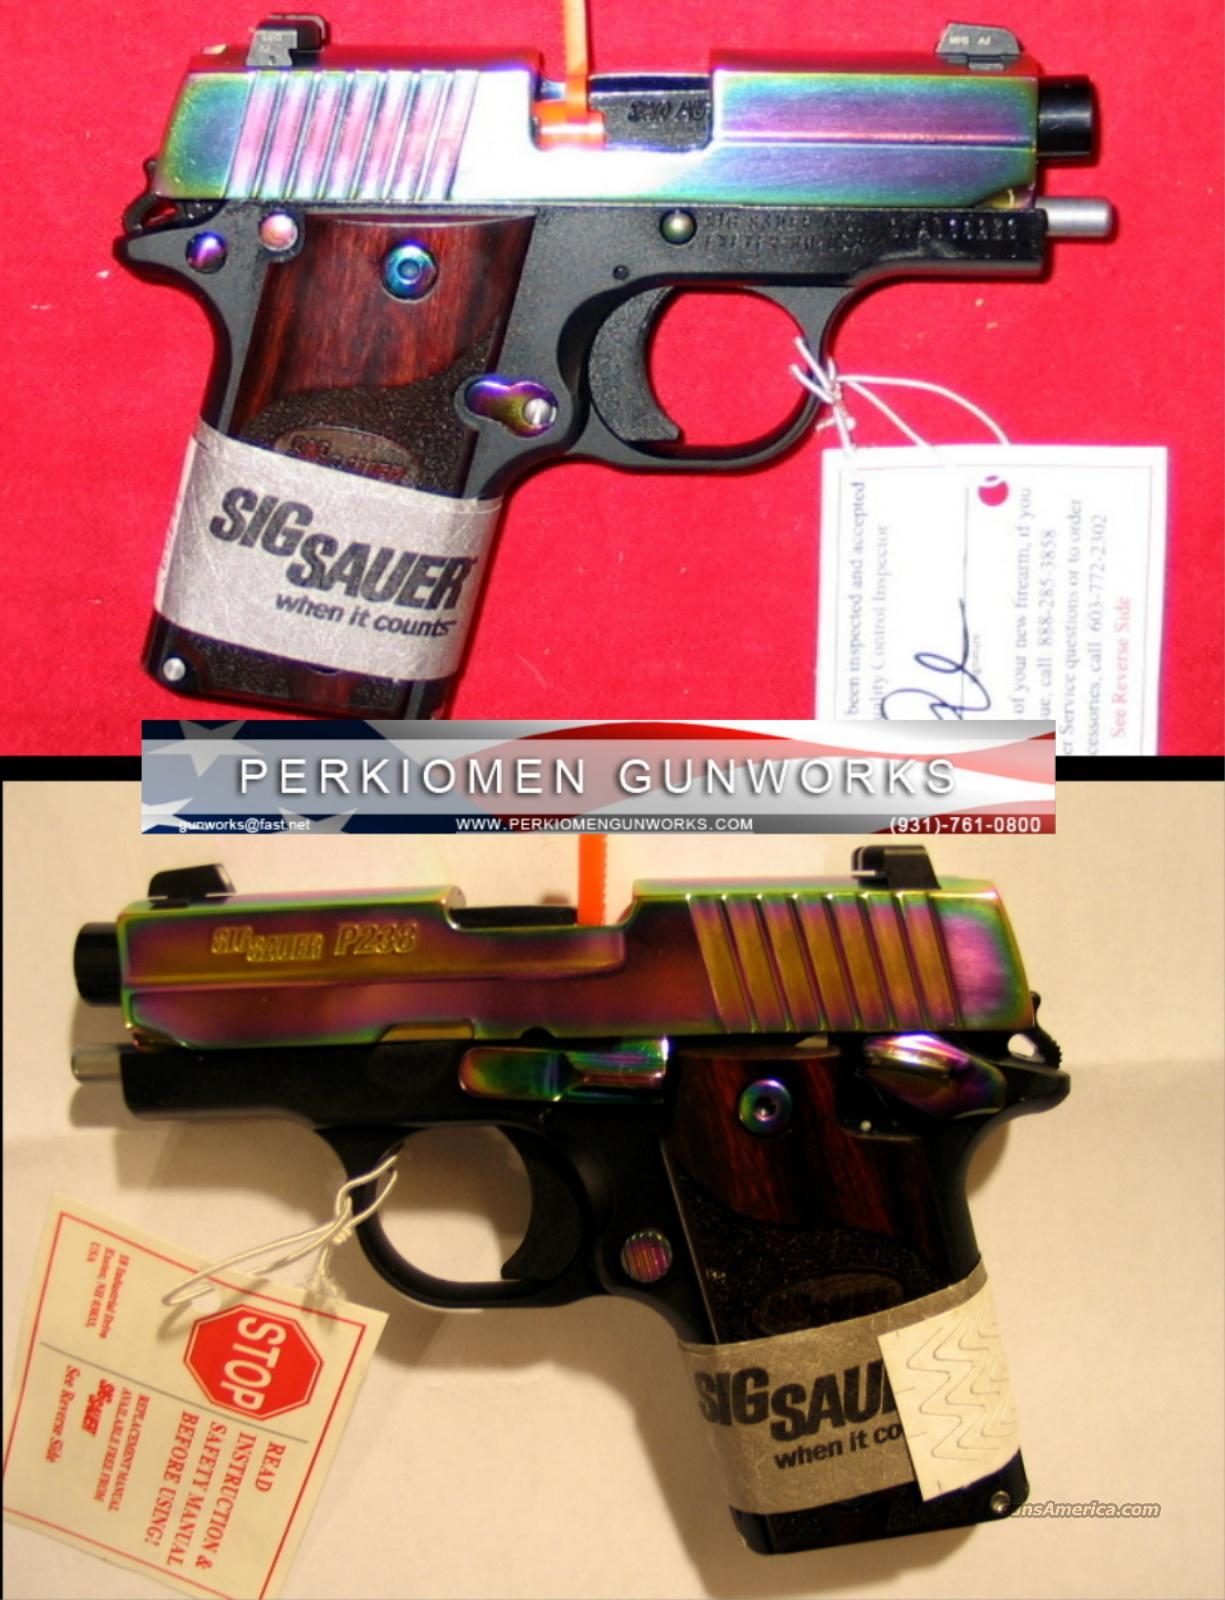 P238 RAINBOW, .380, Nite Sights, New in Box  Guns > Pistols > Sig - Sauer/Sigarms Pistols > P238